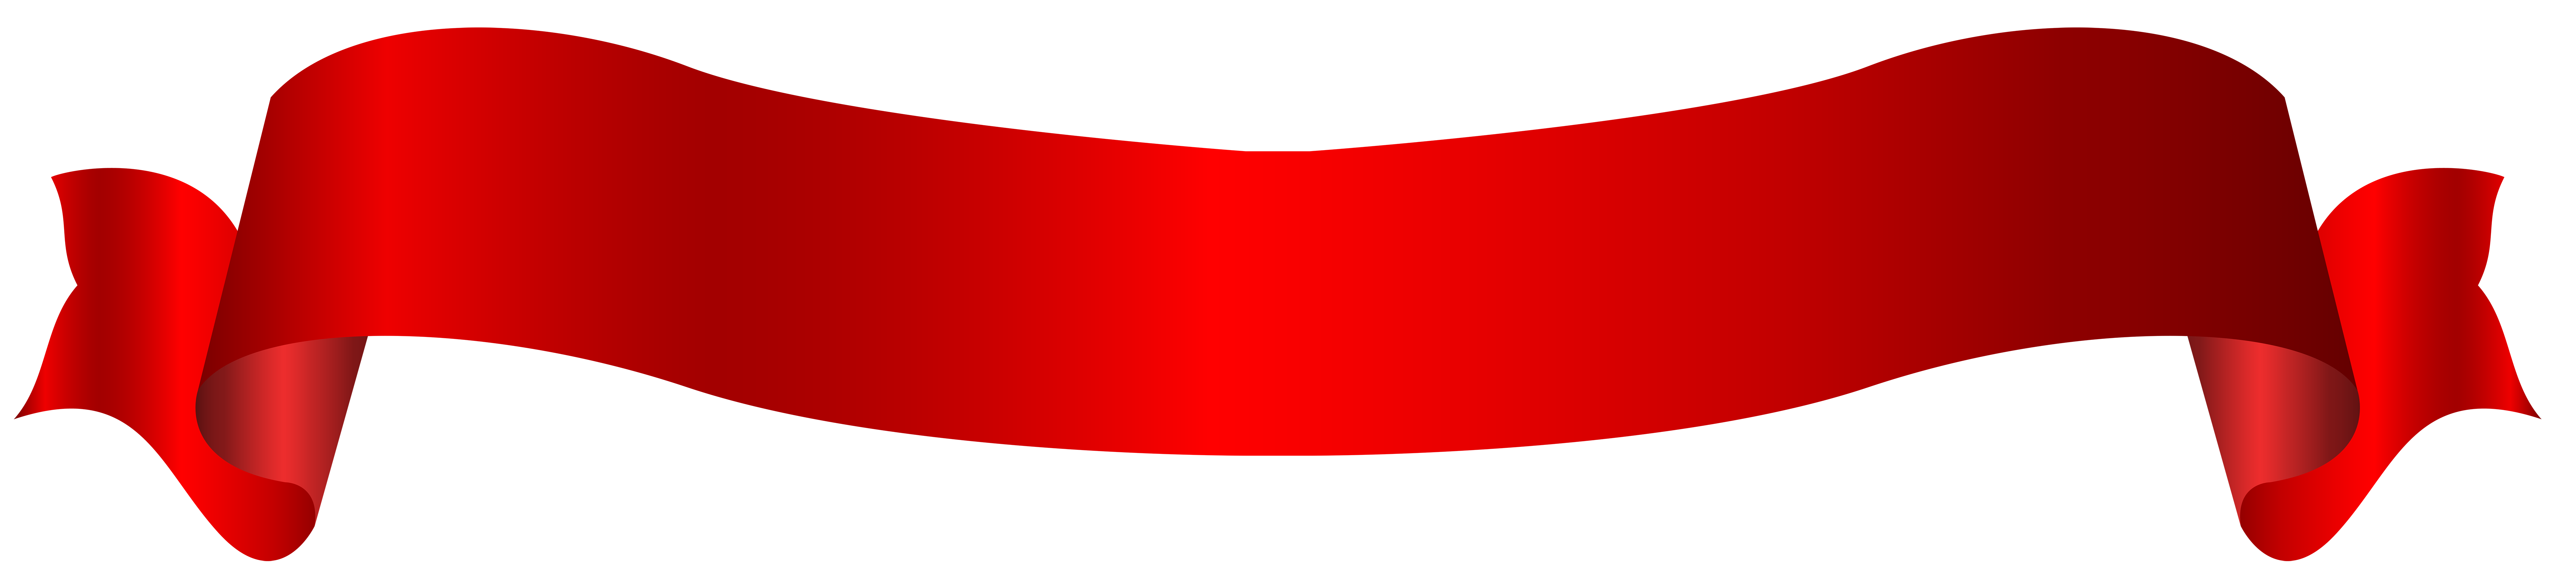 Long red png transparent. Clipart hearts banner